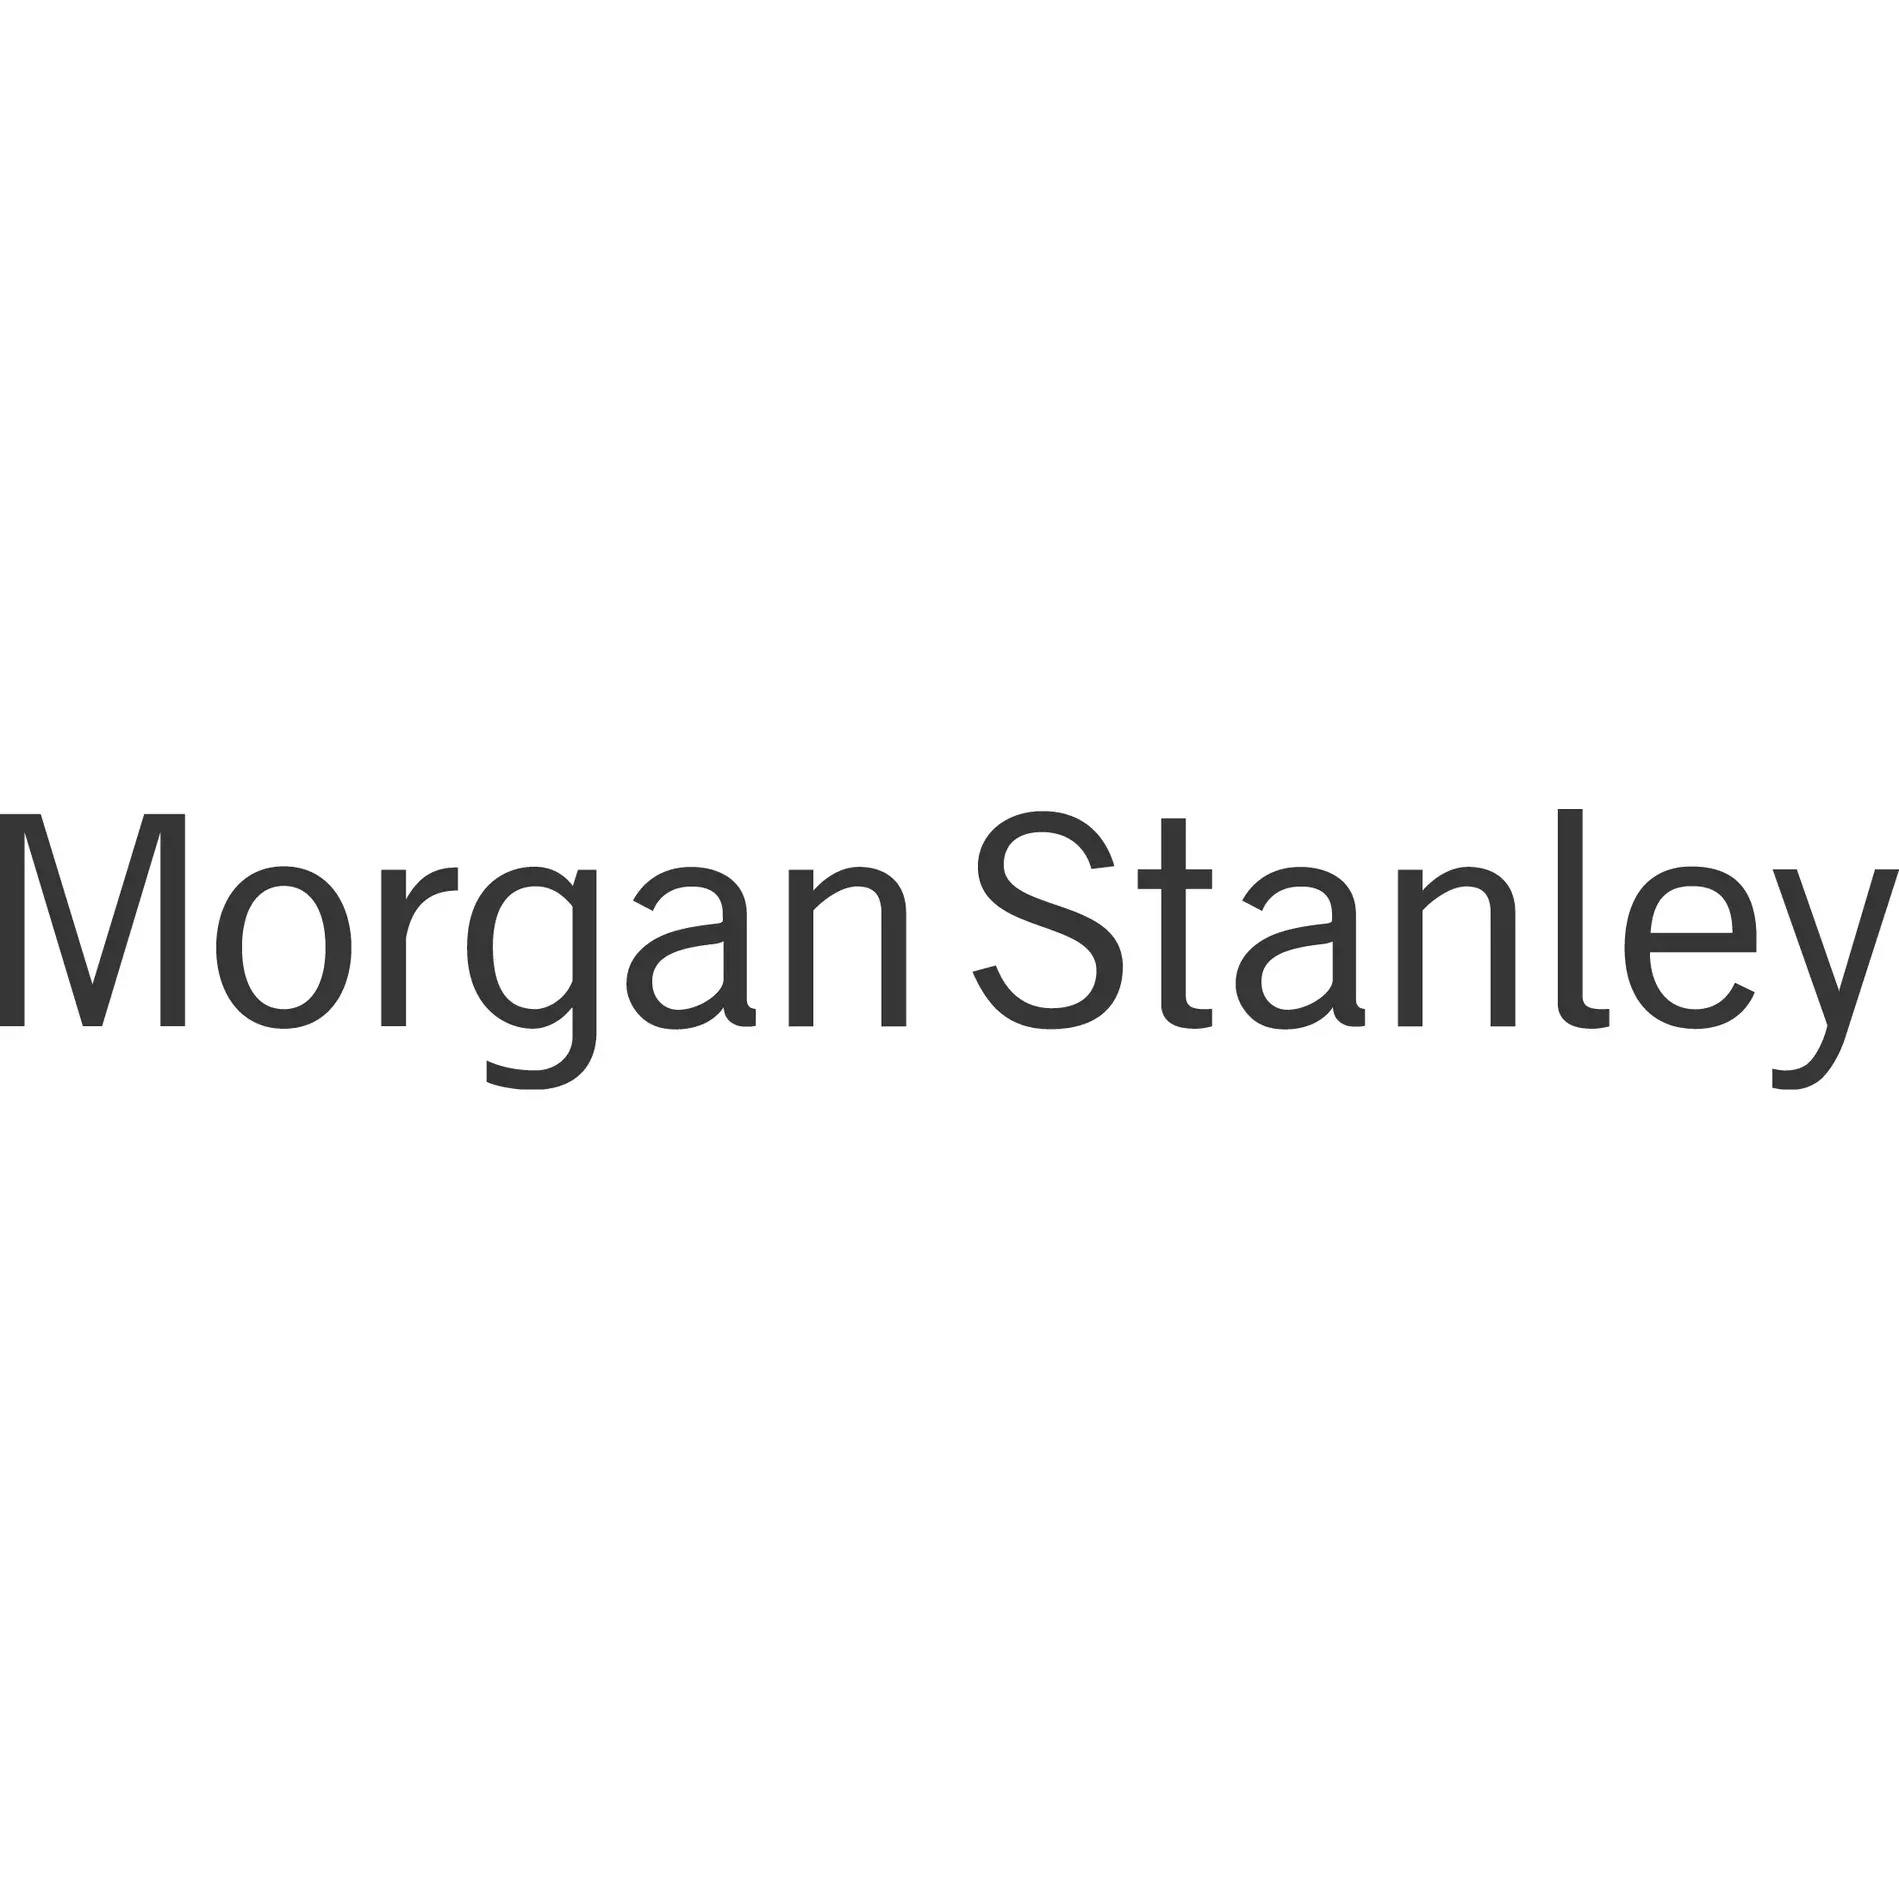 The Roberts Mouligné Group - Morgan Stanley